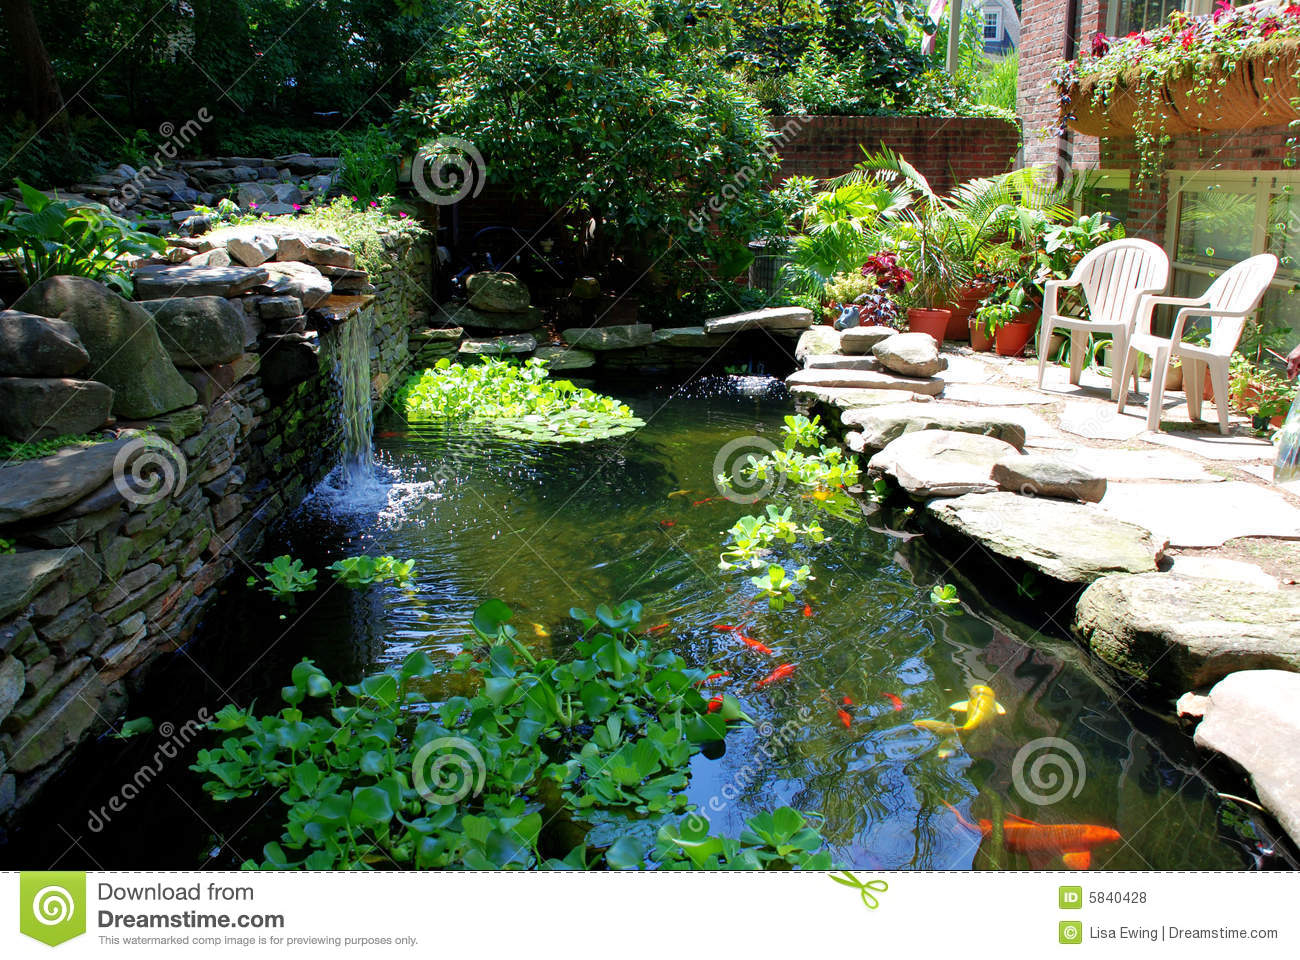 Goldfish and koi pond picture royalty free stock photos for Goldfish pond plants